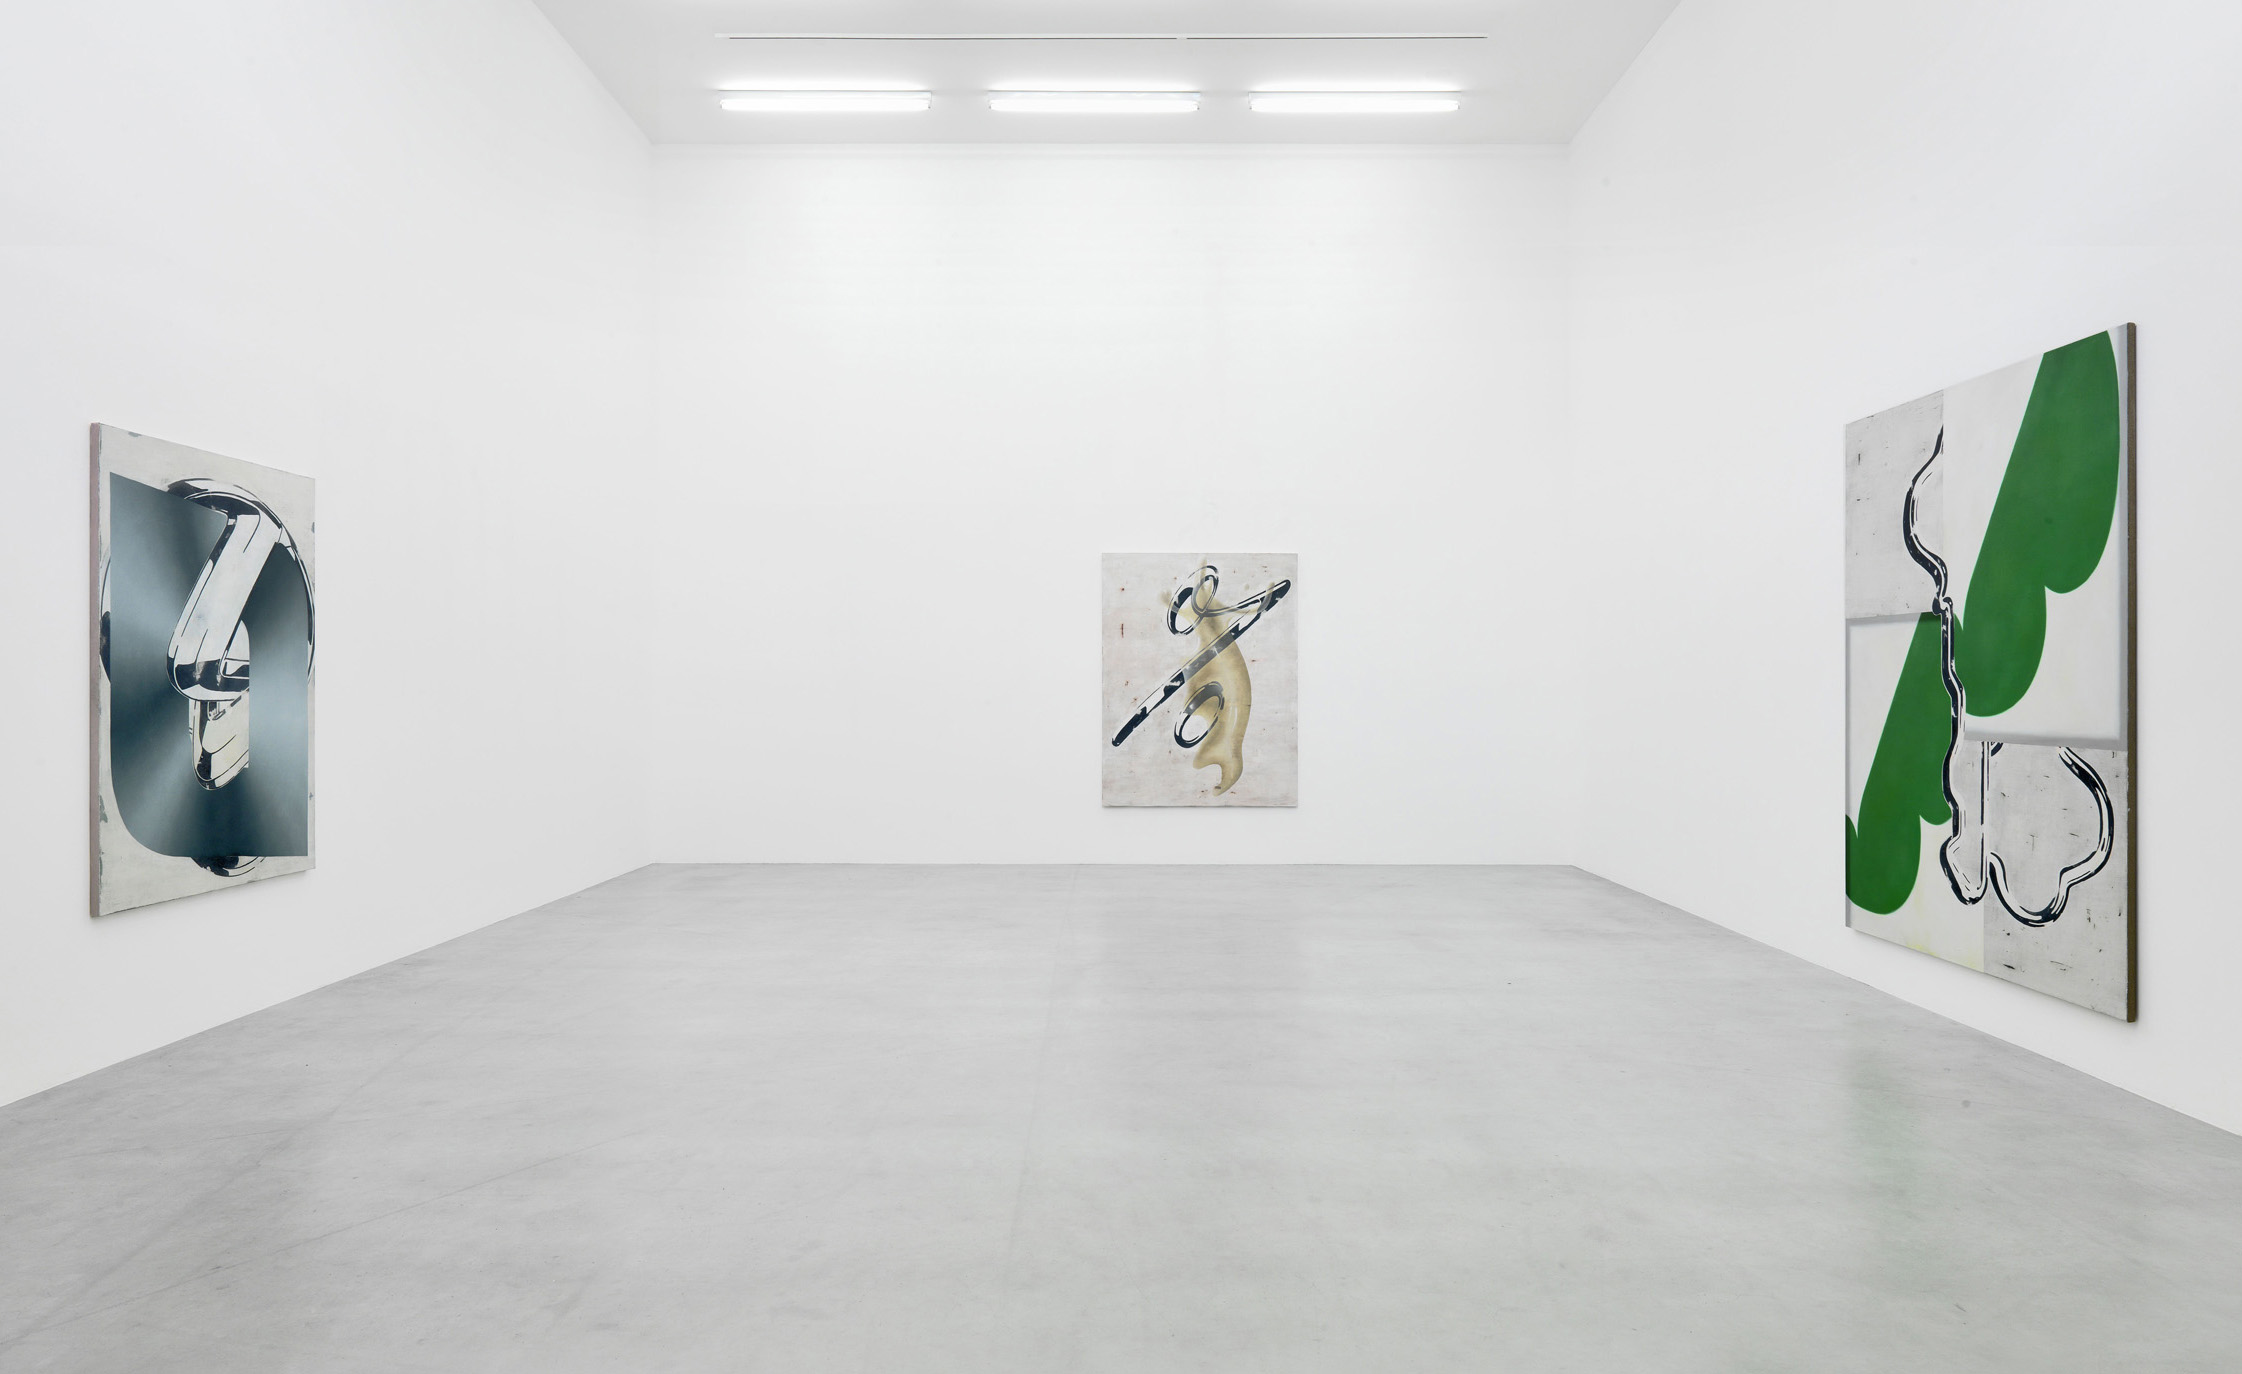 Exhibition view at Oldenburger Kunstverein, Oldenburg, 2013. Photo: Roman März